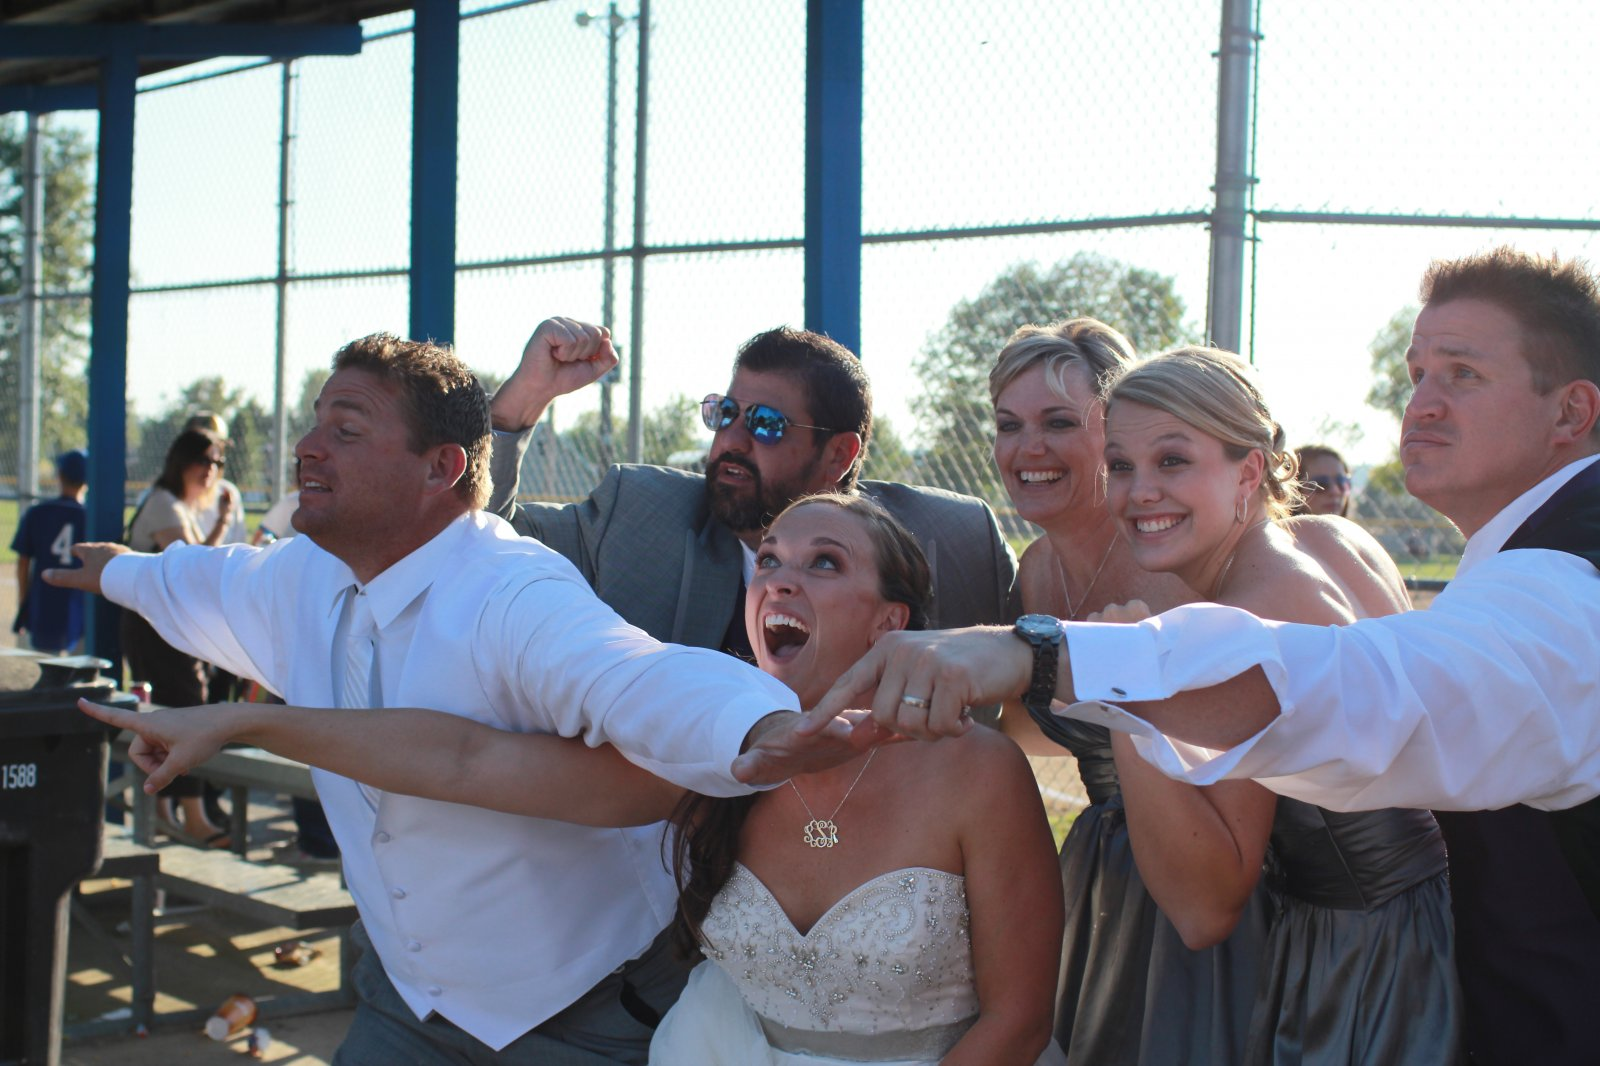 Silly Wedding Parties are the BEST!!